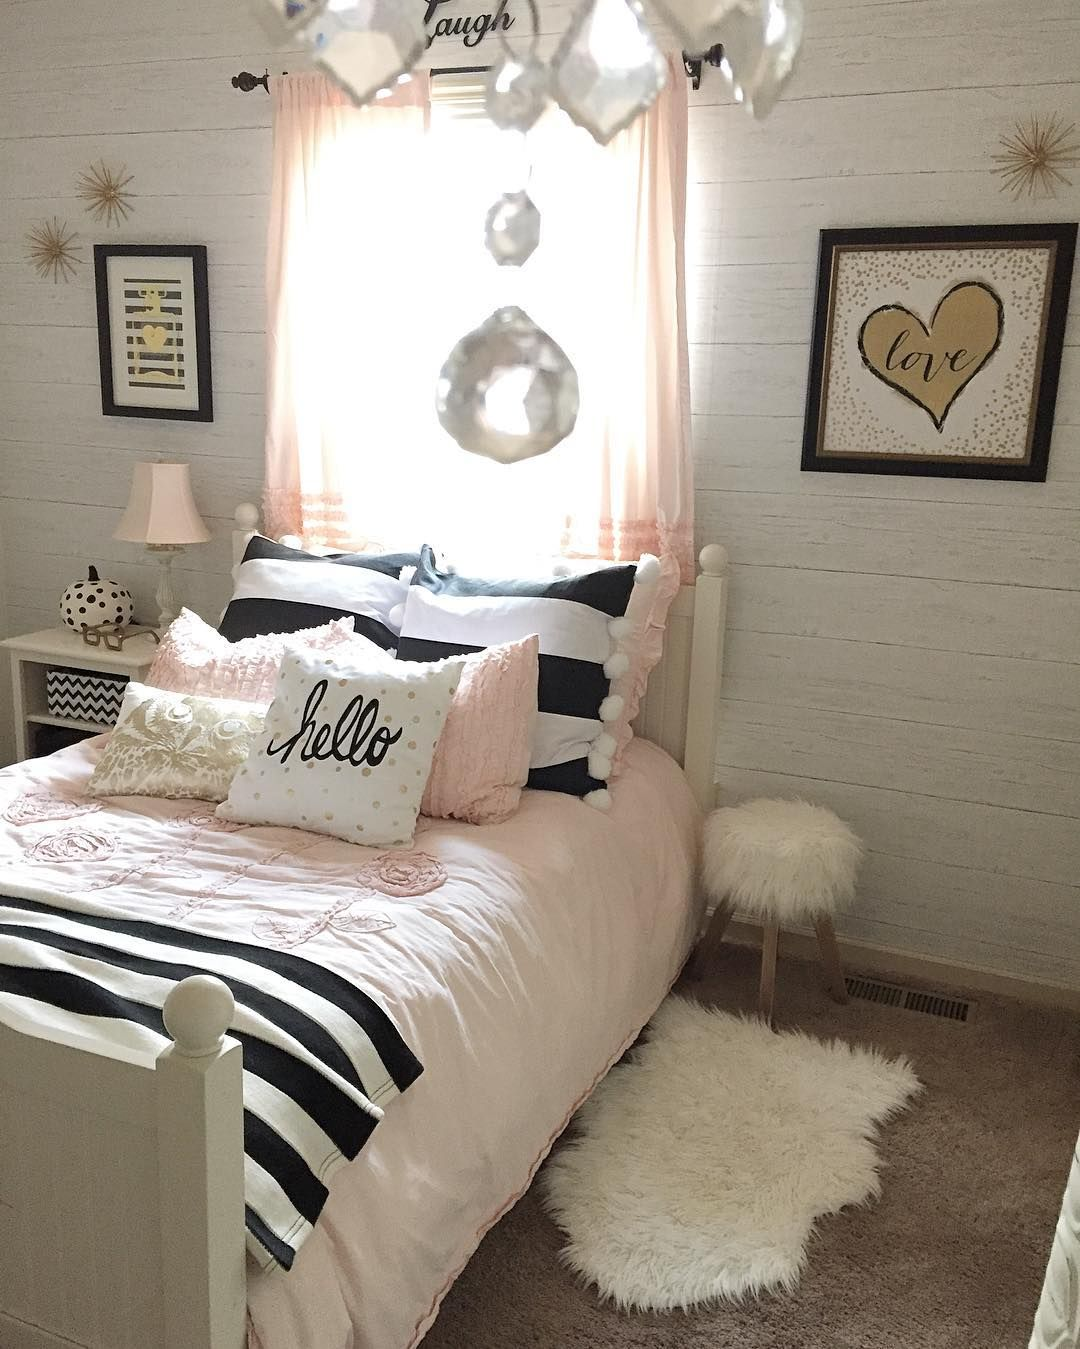 12 Fun Girl's Bedroom Decor Ideas Cute Room Decorating